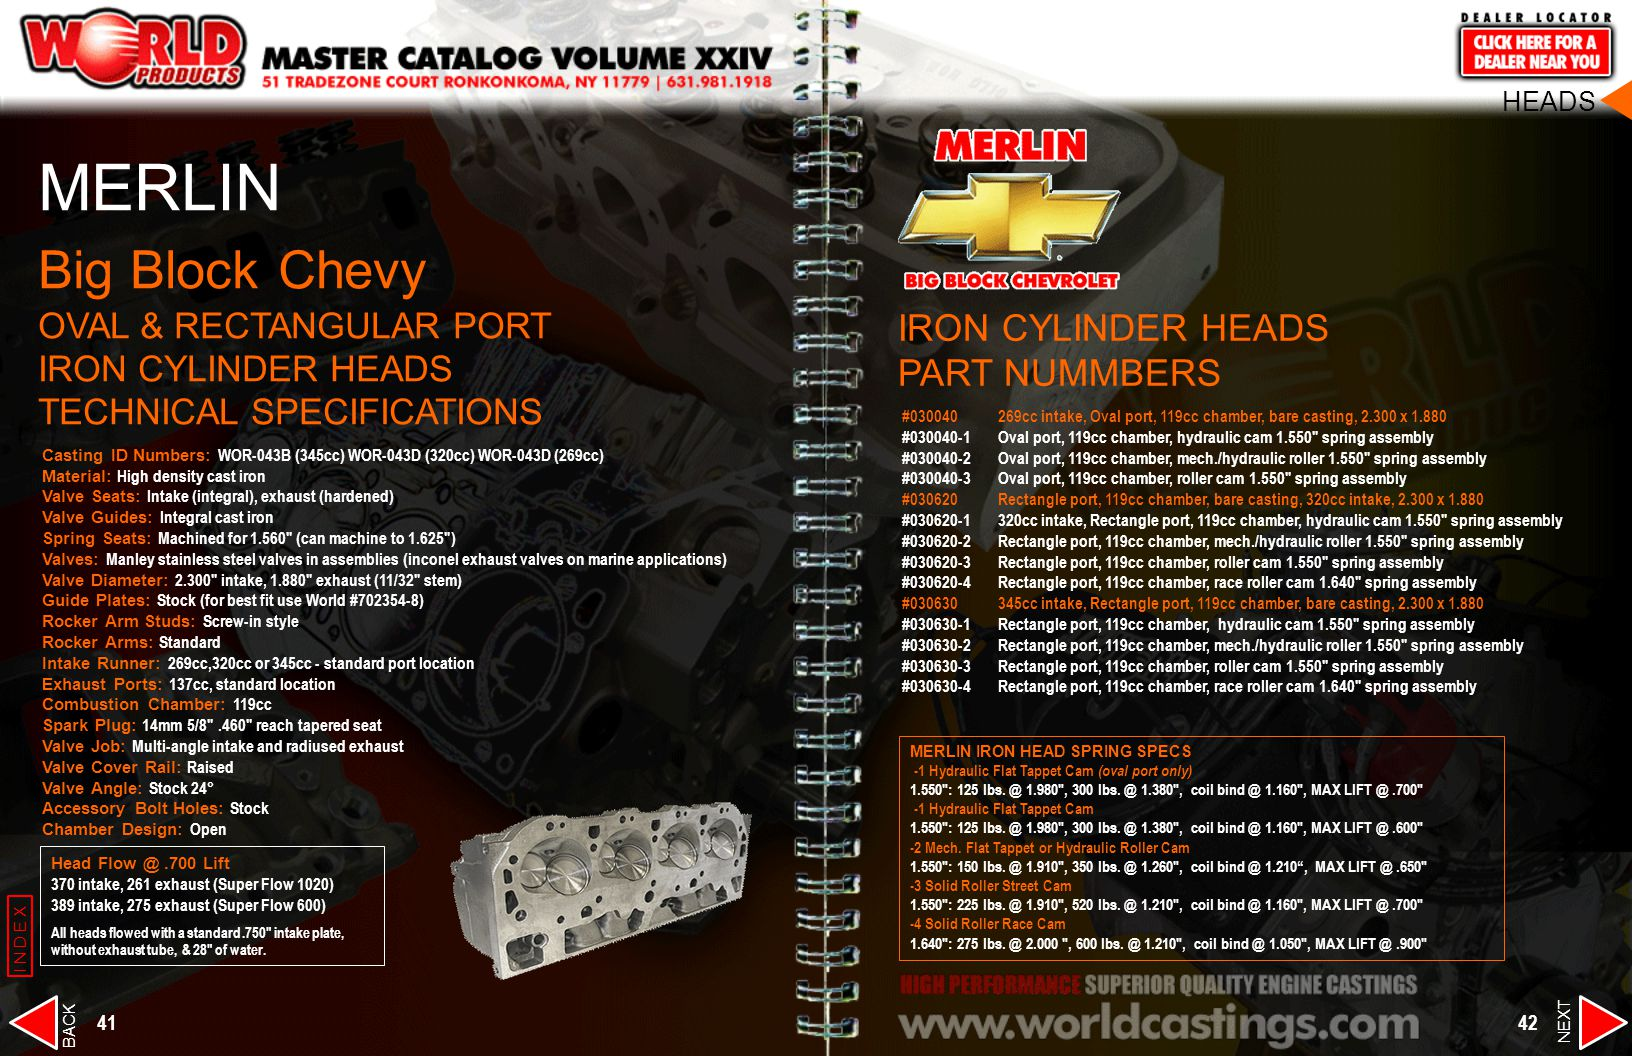 HEADS MERLIN. Big Block Chevy OVAL & RECTANGULAR PORT IRON CYLINDER HEADS TECHNICAL SPECIFICATIONS.